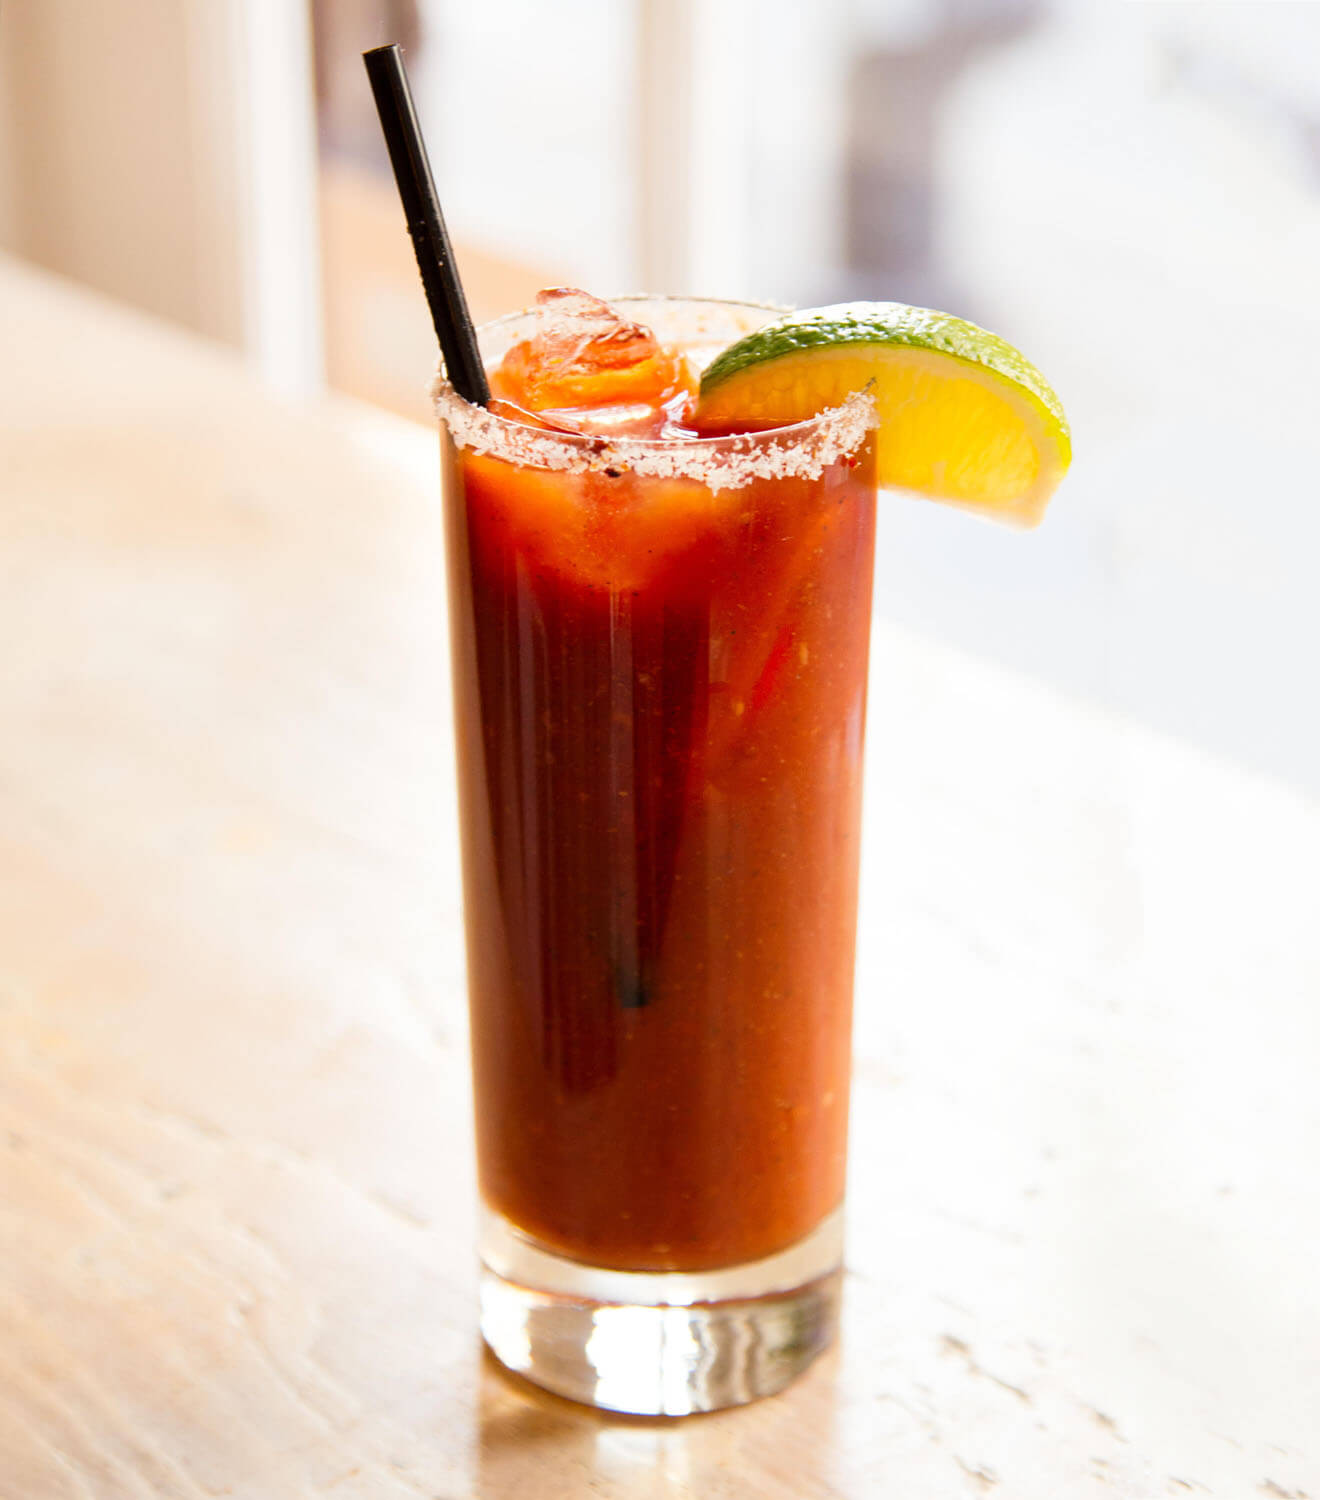 Egg Shop's Bloody Mary